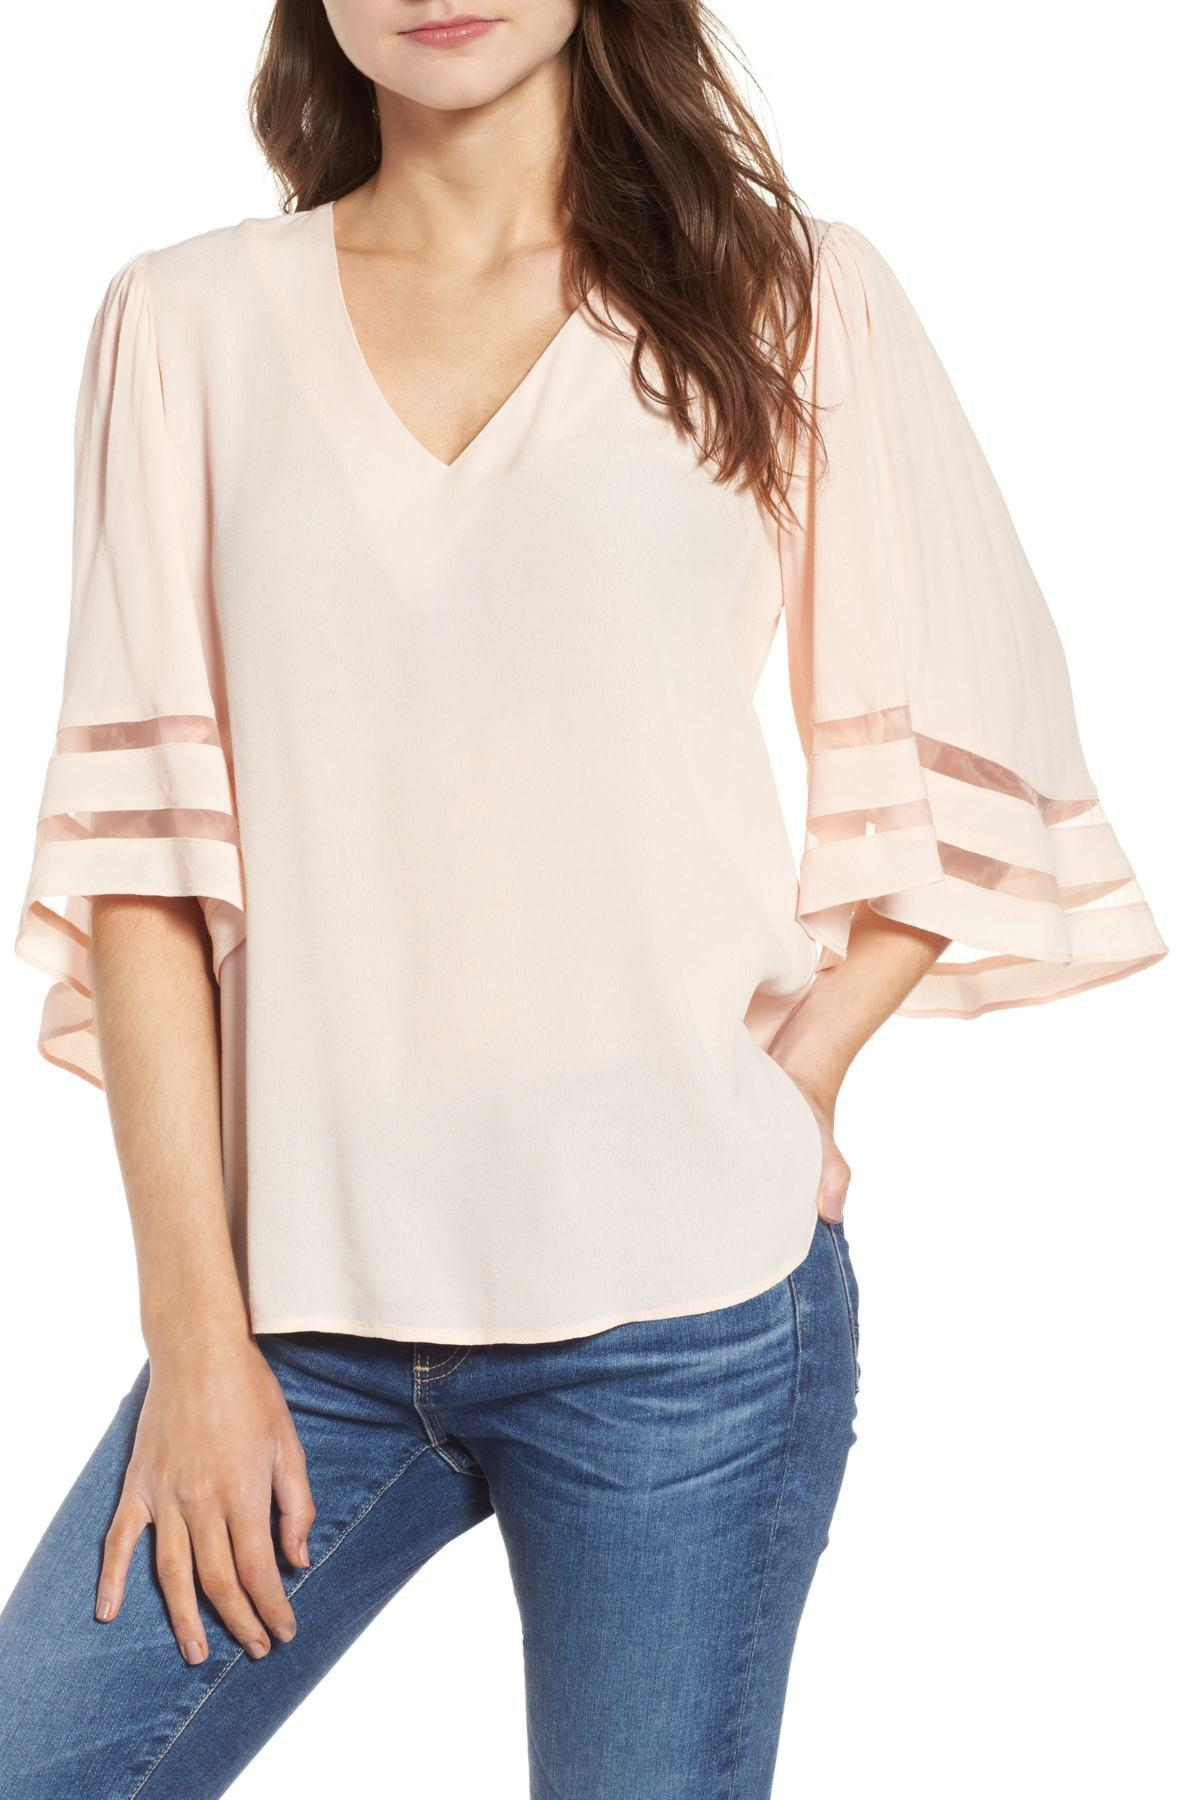 807a3ca5afd23c Lyst - Chelsea28 Illusion Sleeve Top - Save 68%